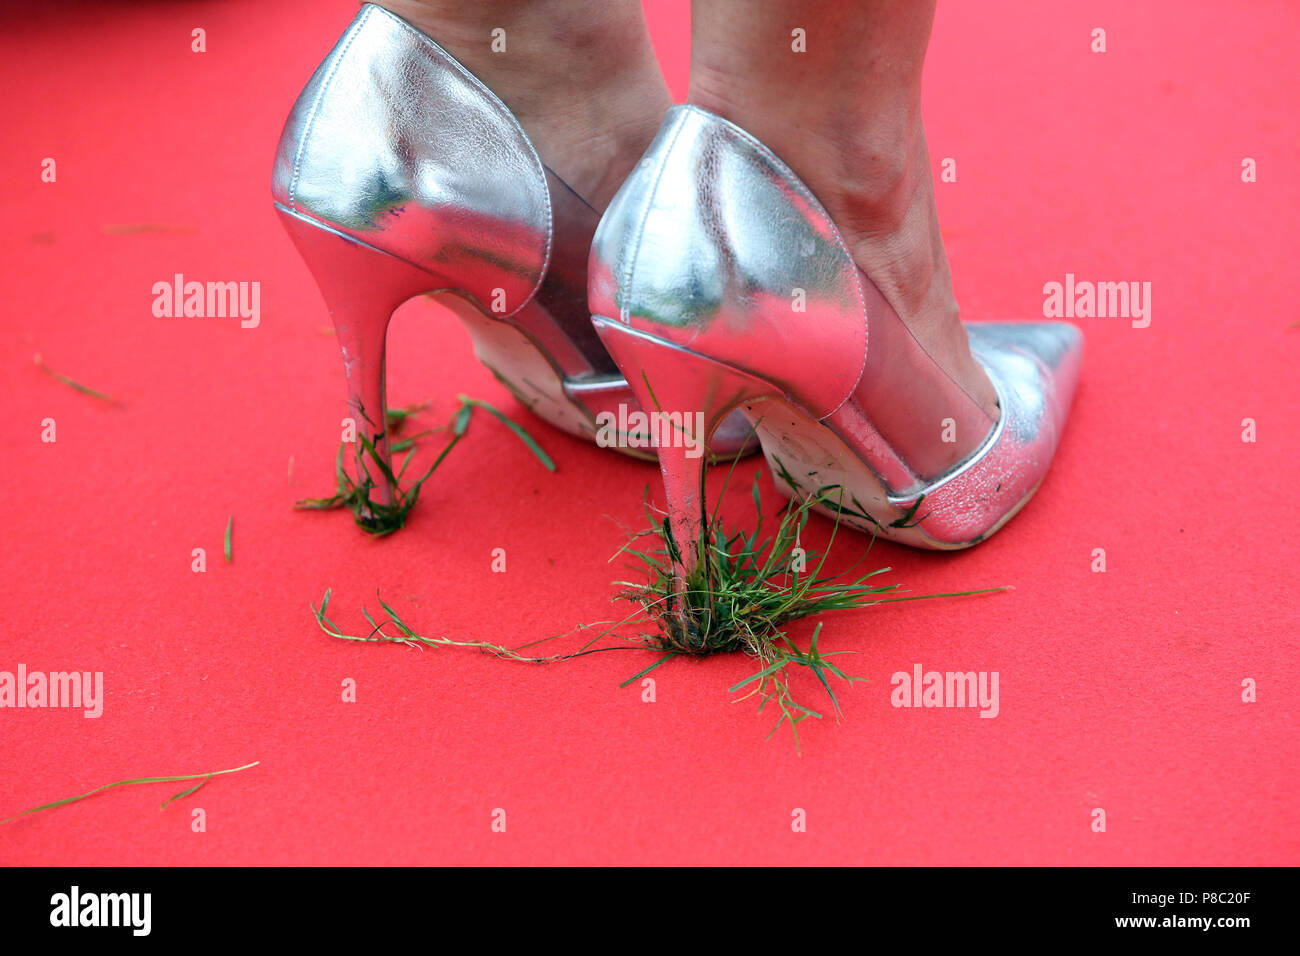 Hannover, Germany, grass hangs on the heels of high heels - Stock Image